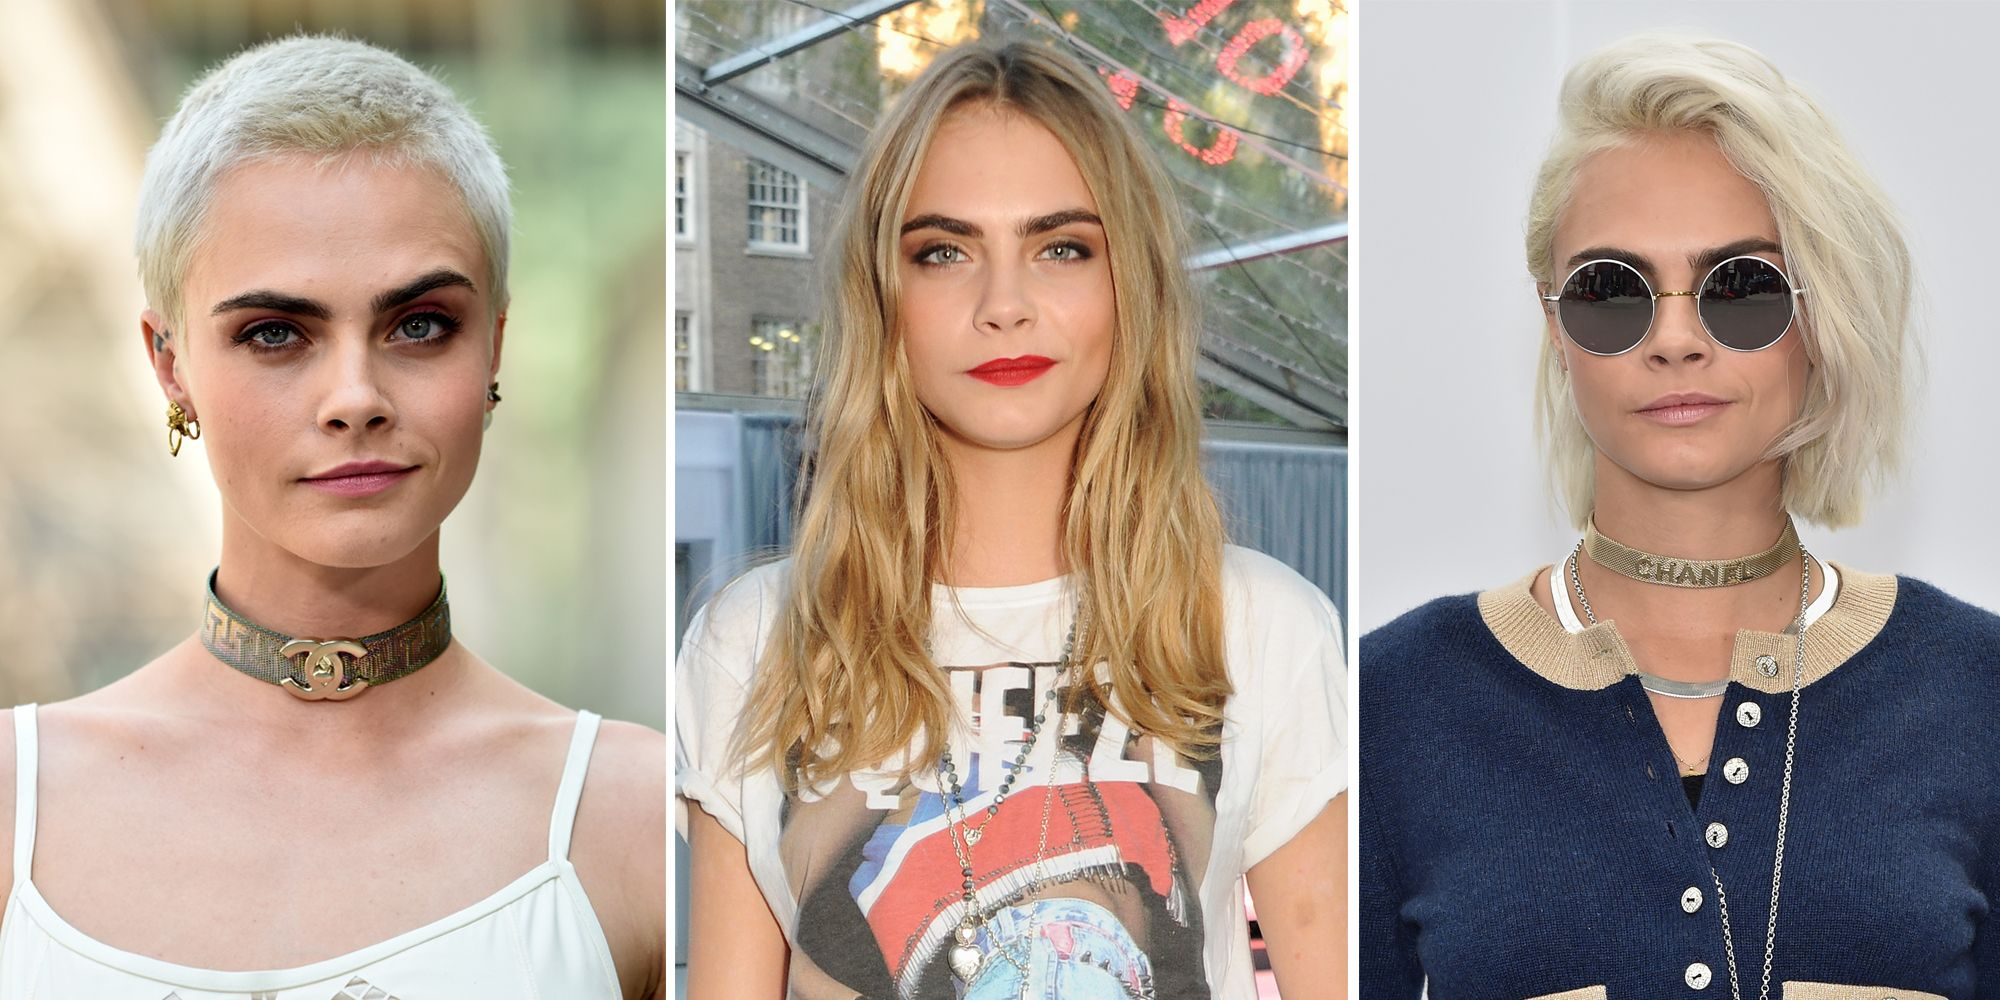 bcf99387924 Cara Delevingne s Hair Evolution - From Uber Long To Buzzcut And Everything  In Between